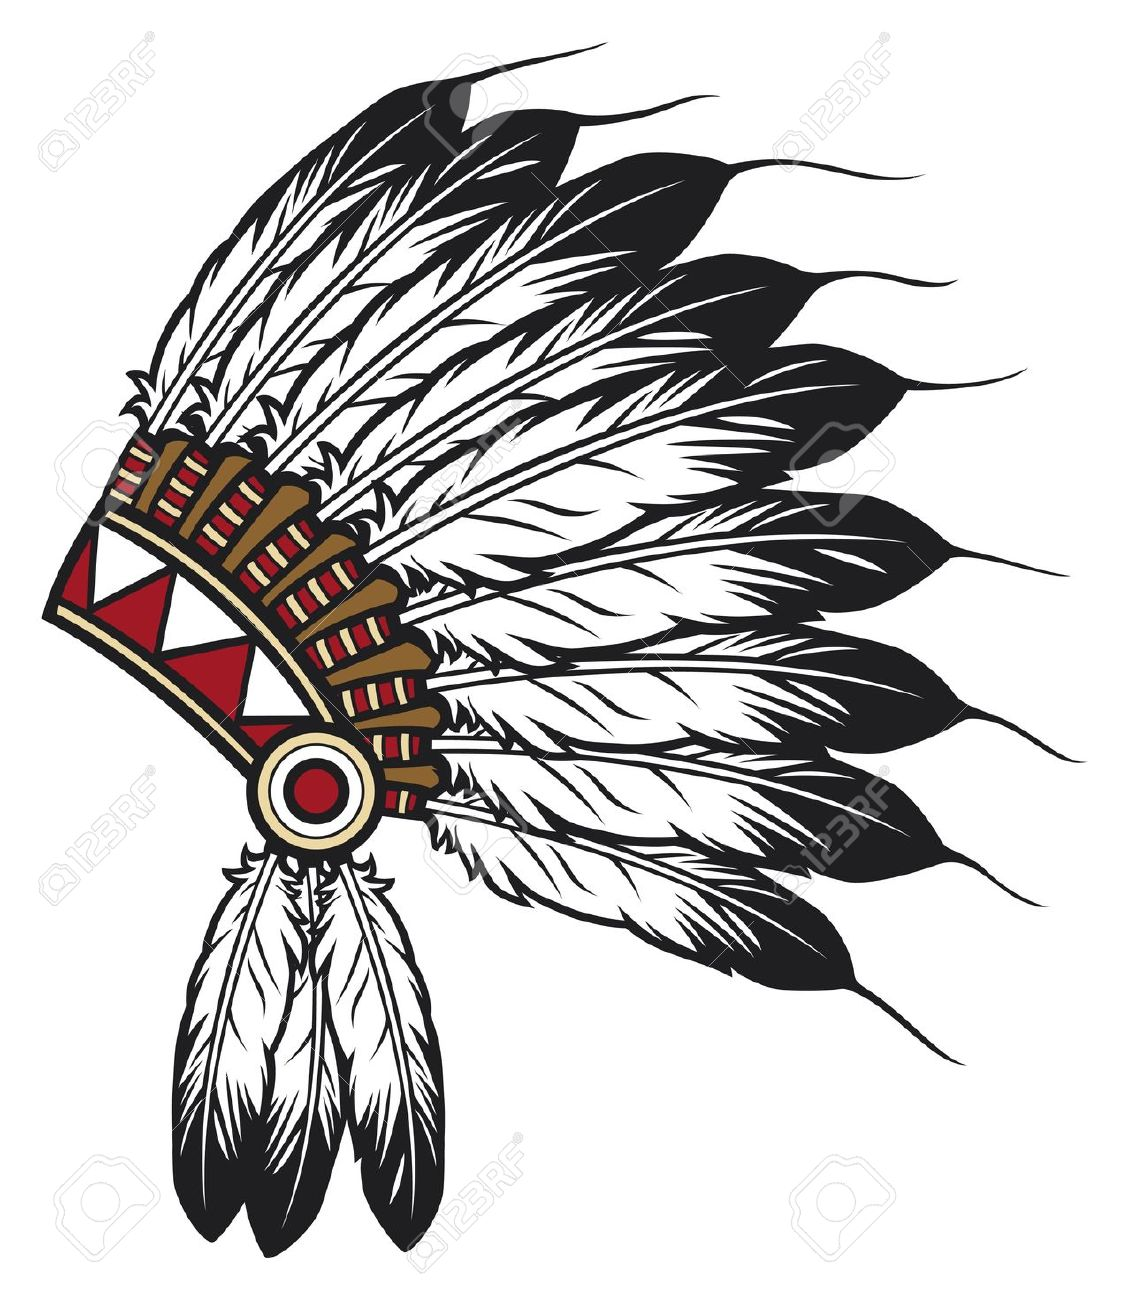 Headdress clipart Headdress Clipartix headdress clipart Indian